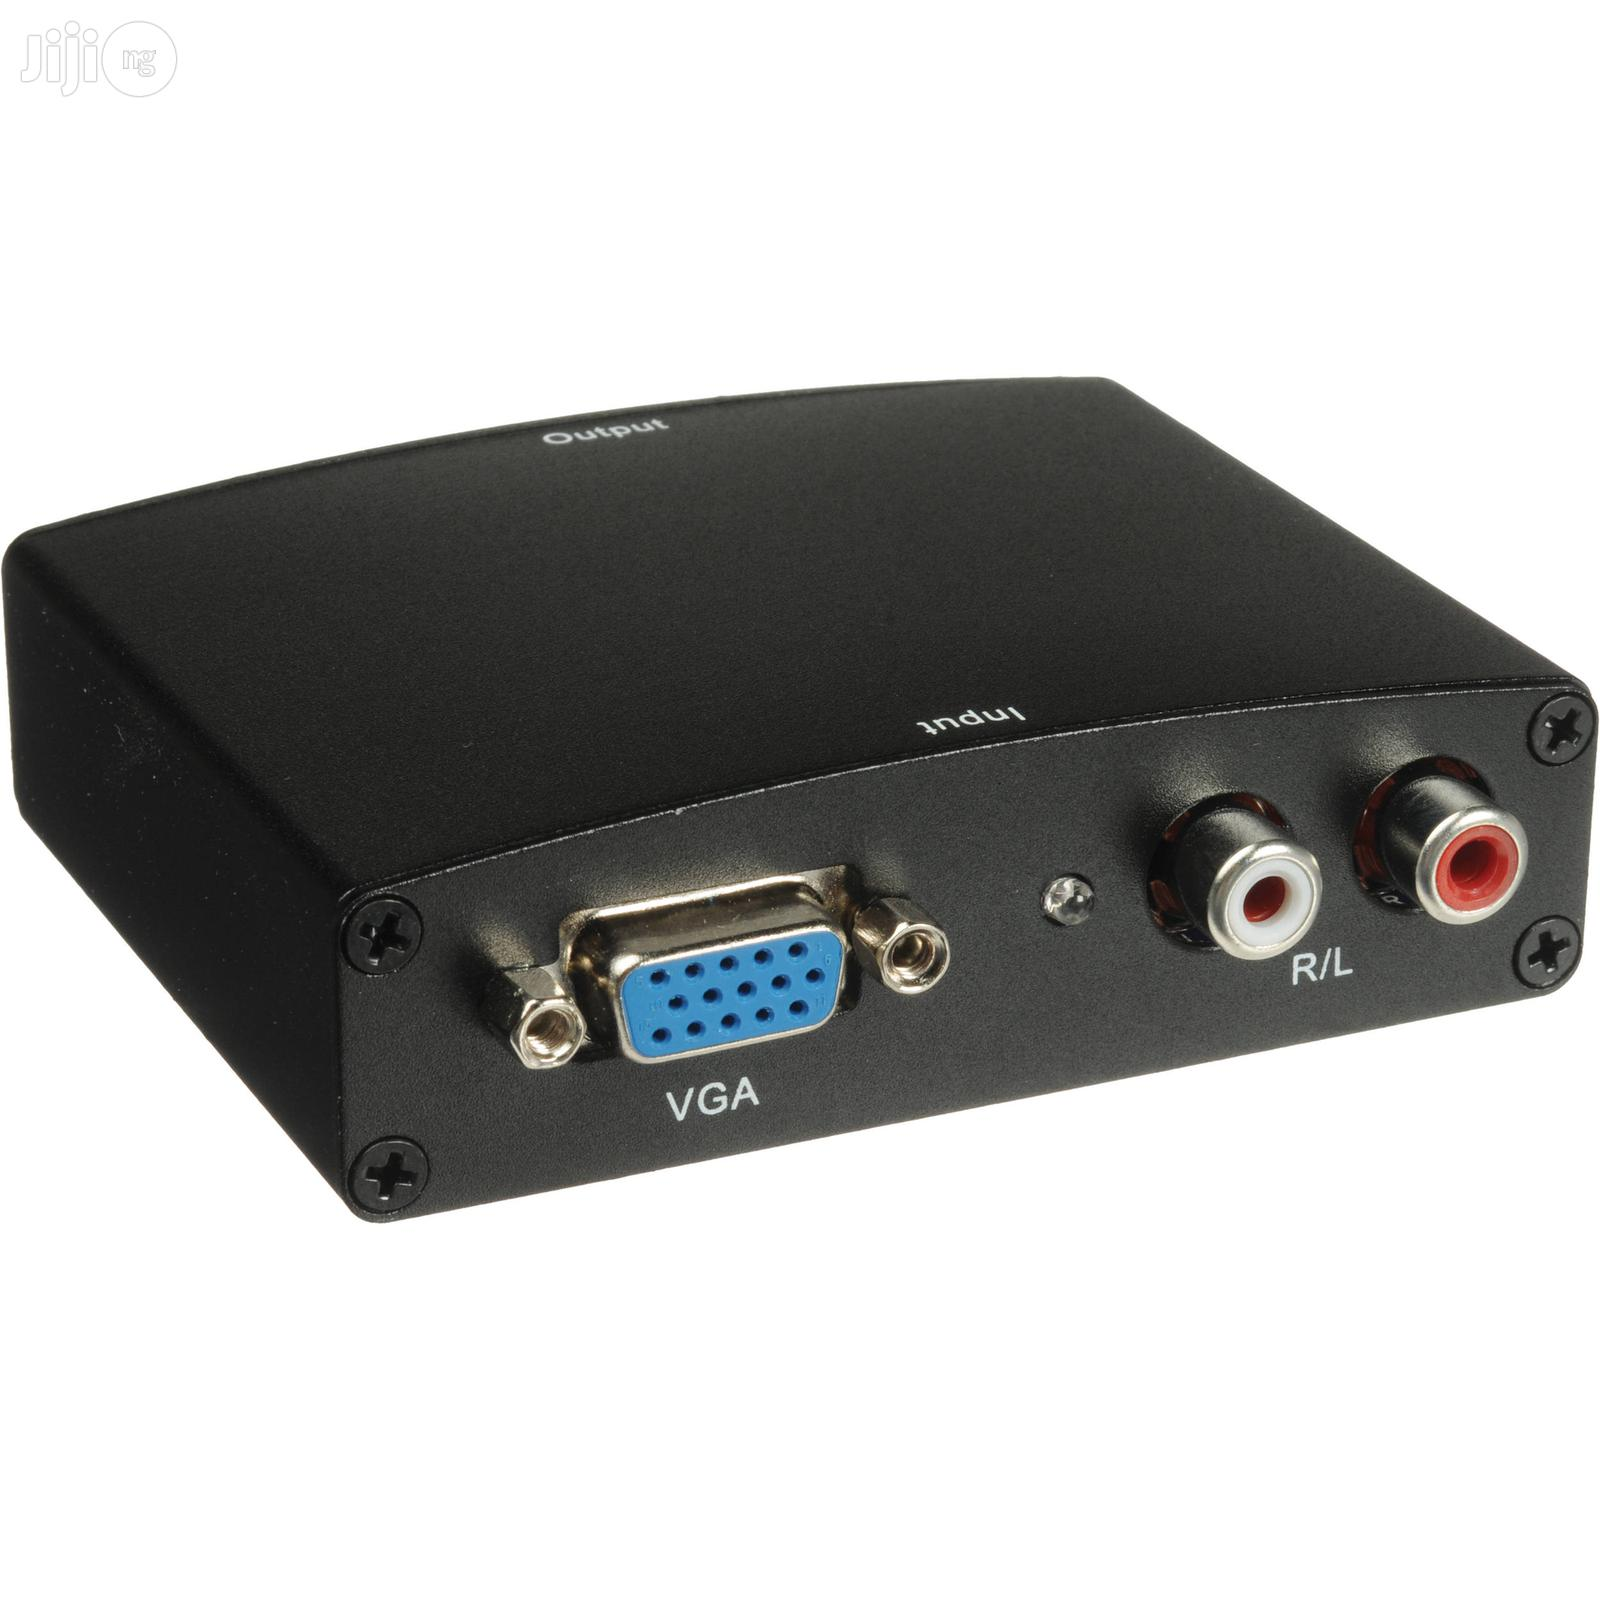 VGA To HDMI PC (Vga) + Audio (L/R) To HDMI Converter